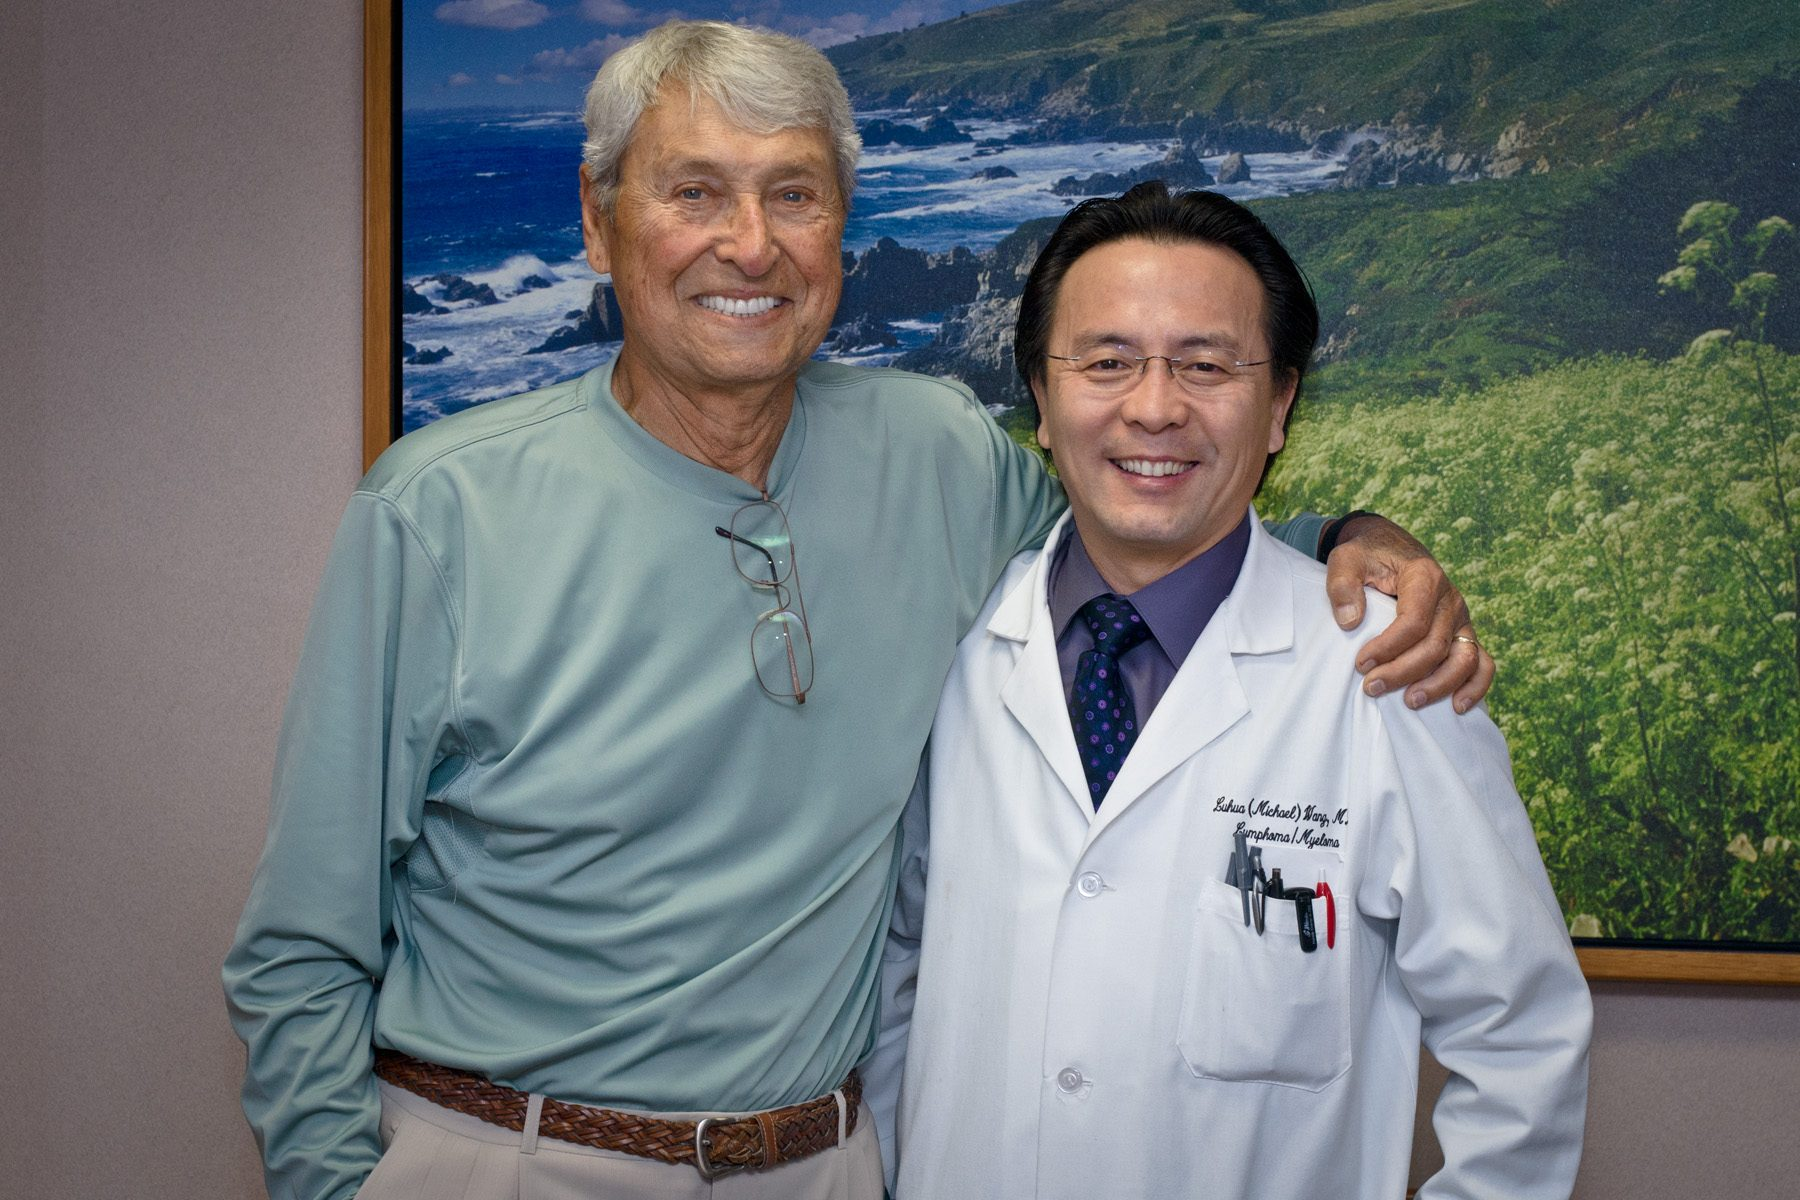 Marvin Kimmel, left, says his diagnosis took him through an array of emotions, but at the end of the day he needed to know whether there was hope. He found it in his MD Anderson oncologist, Michael Wang, M.D. Photo by Barry Smith.